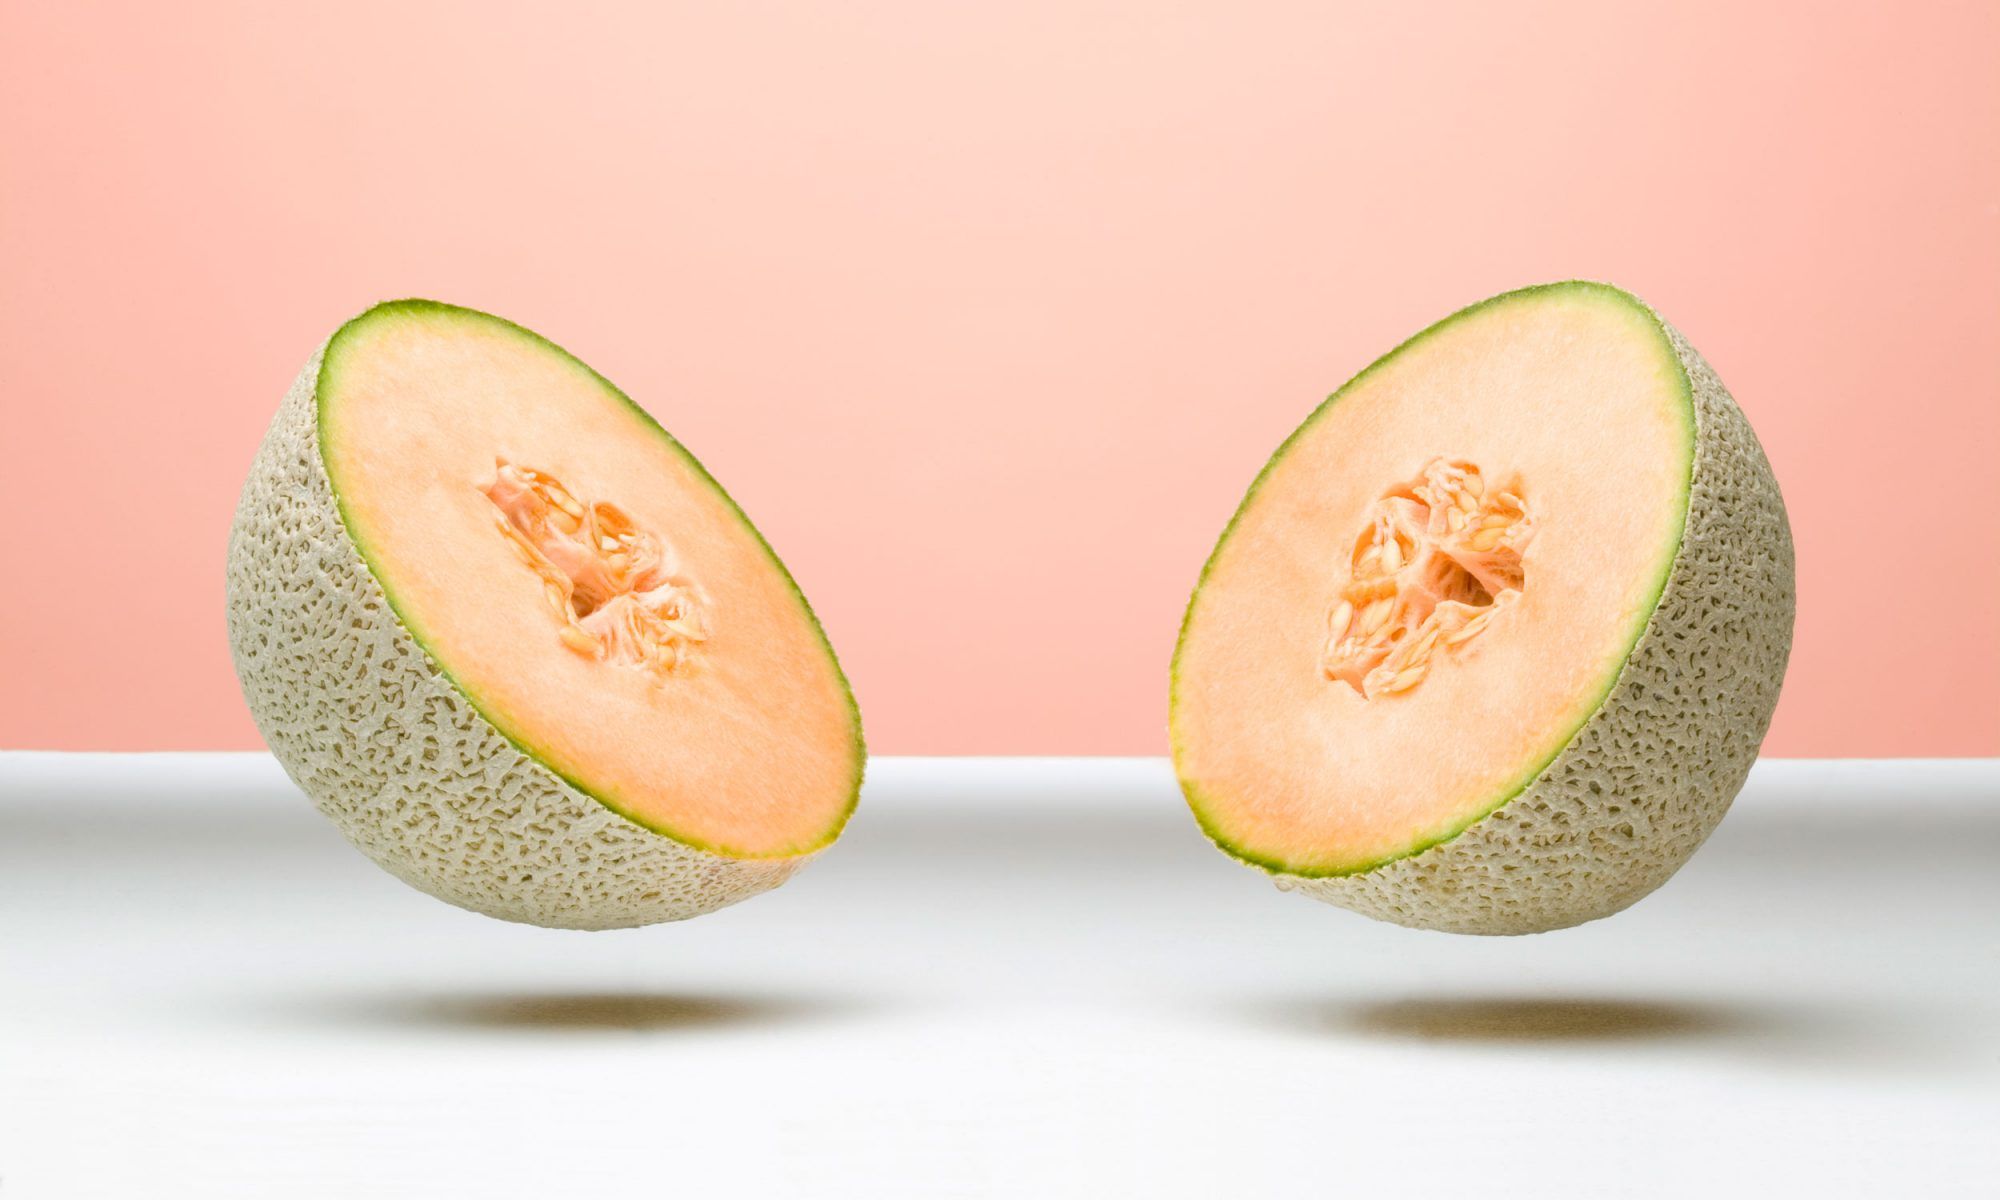 EC: These 3 DIY Cantaloupe Beauty Recipes Will Keep You Hydrated This Summer